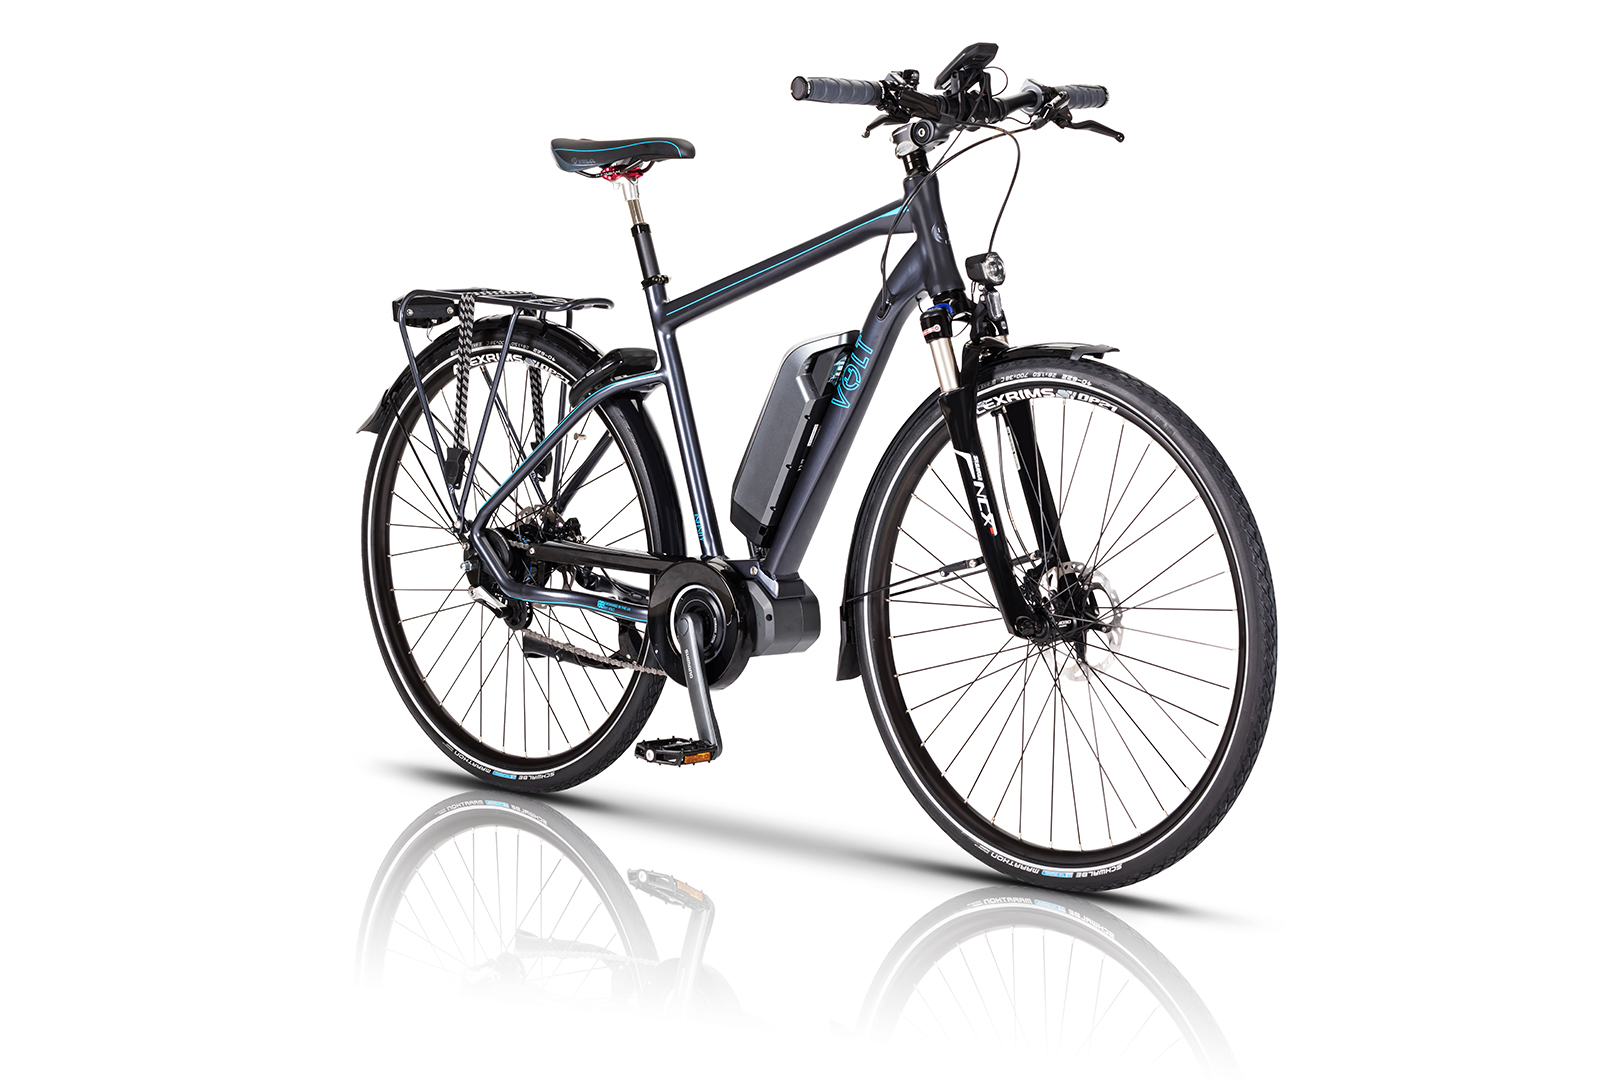 Infinity Shimano STEPS e-bike from Volt